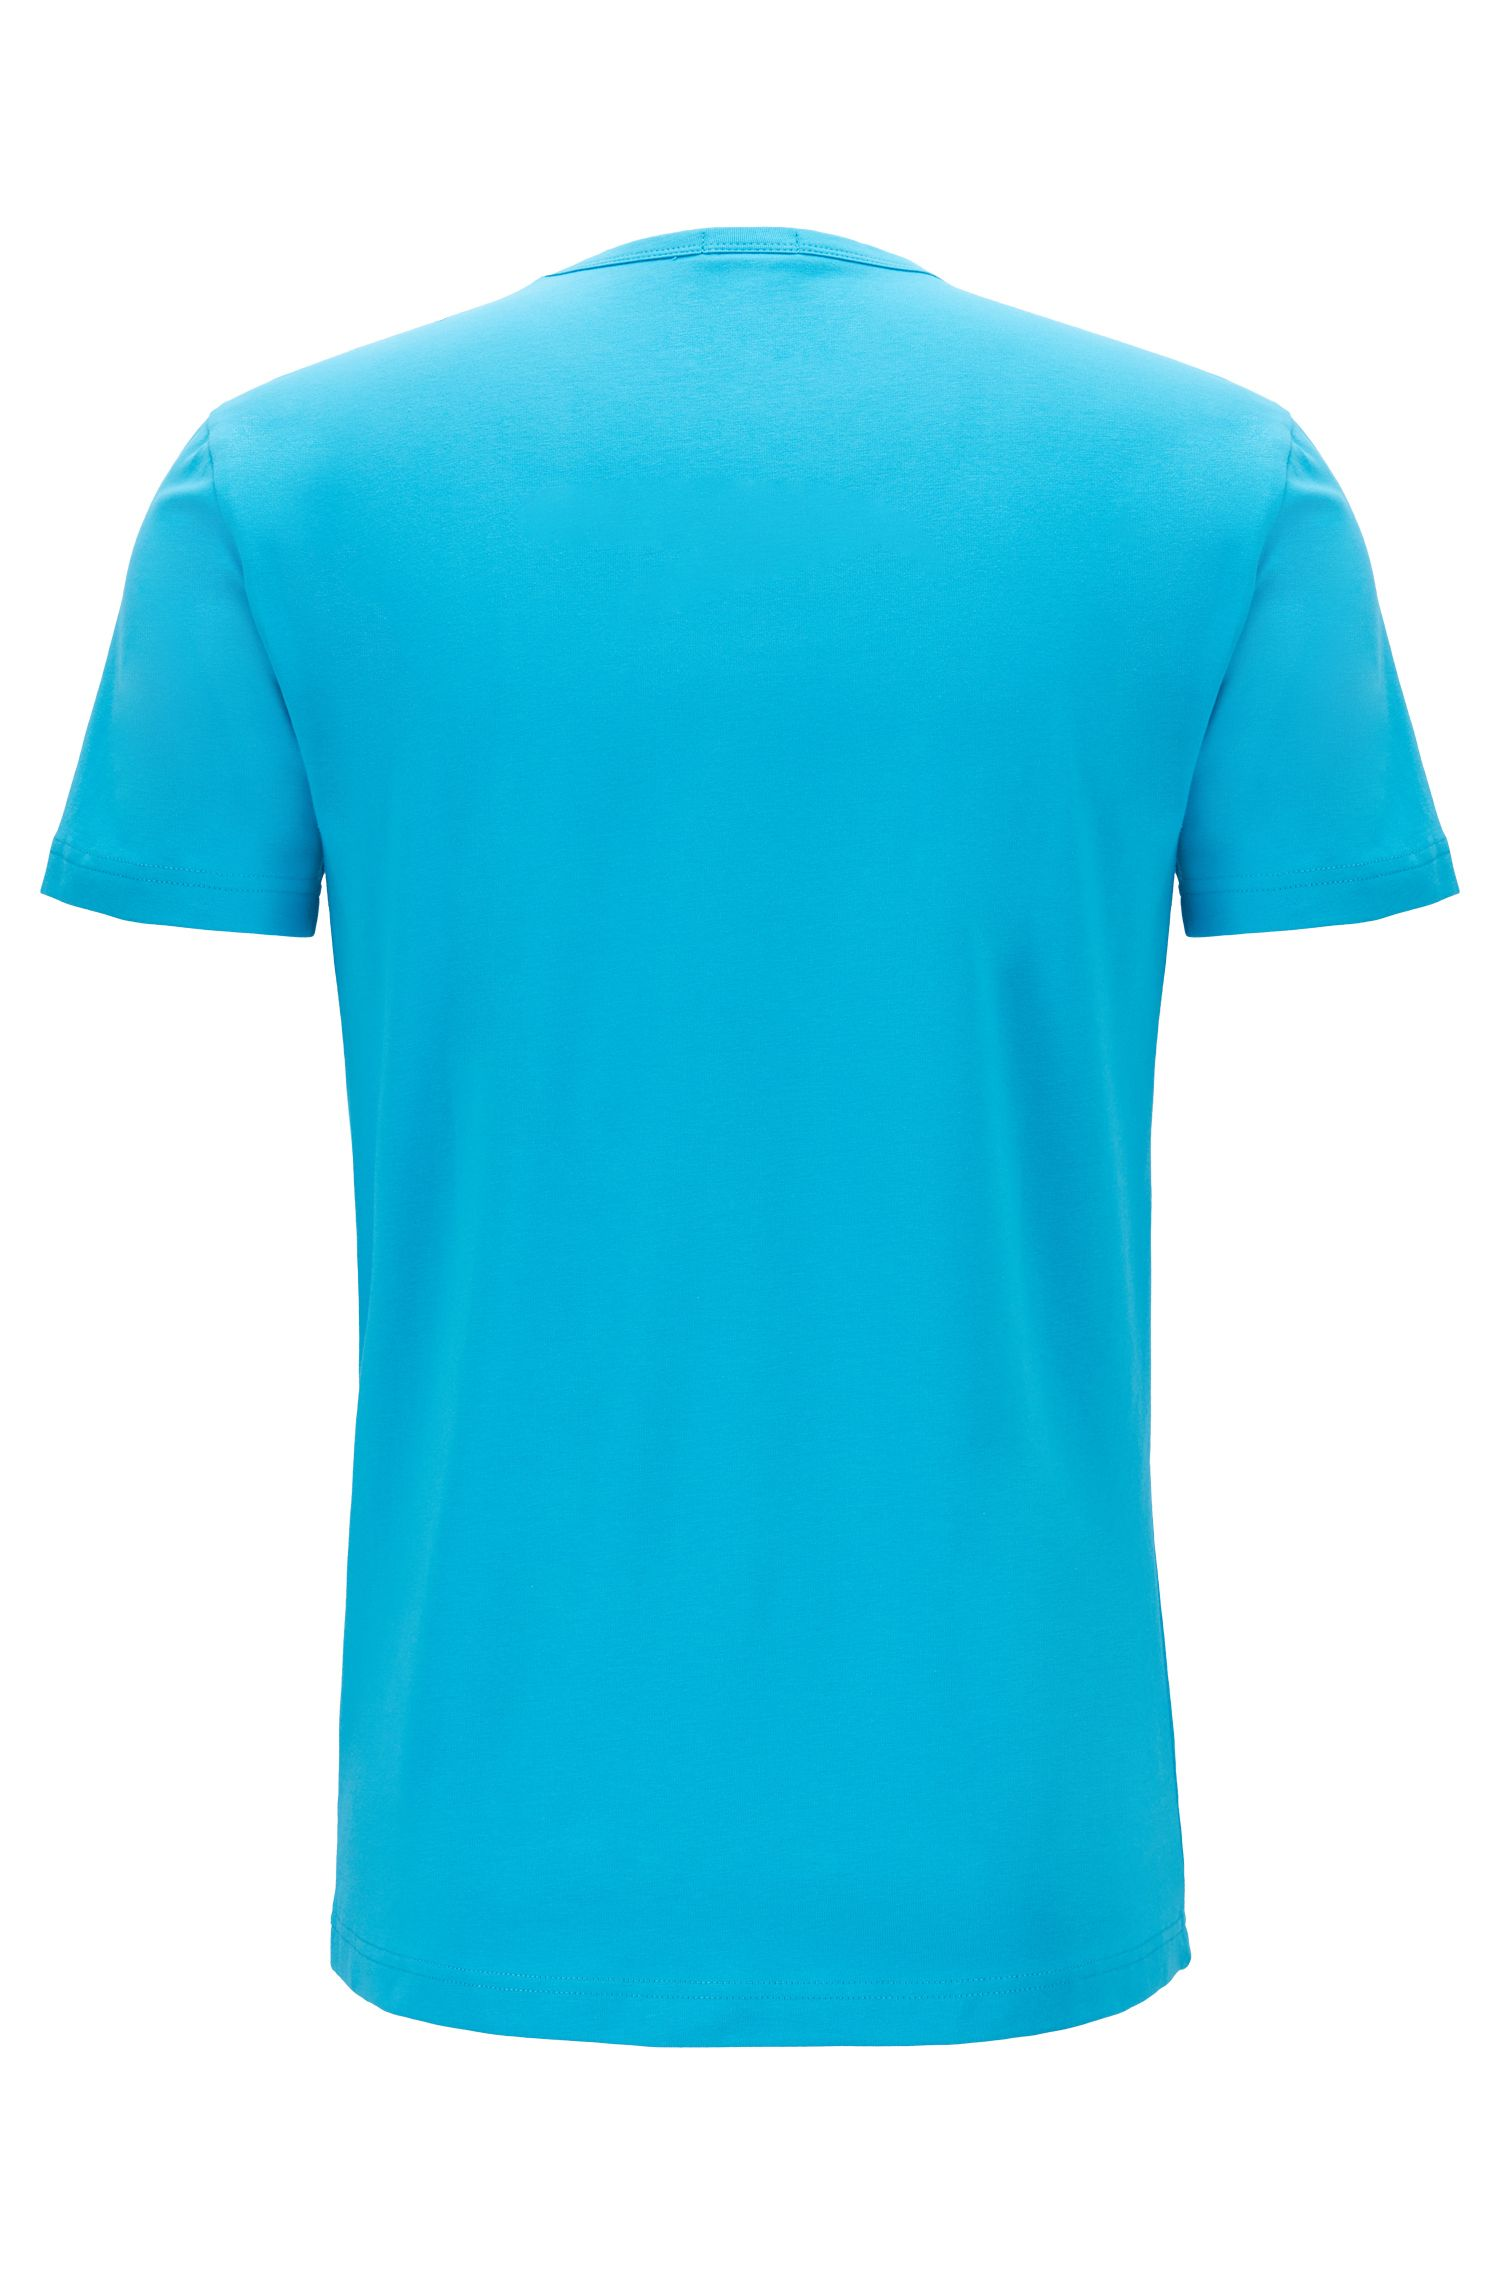 Crew-neck T-shirt in stretch cotton with reflective logo, Blue